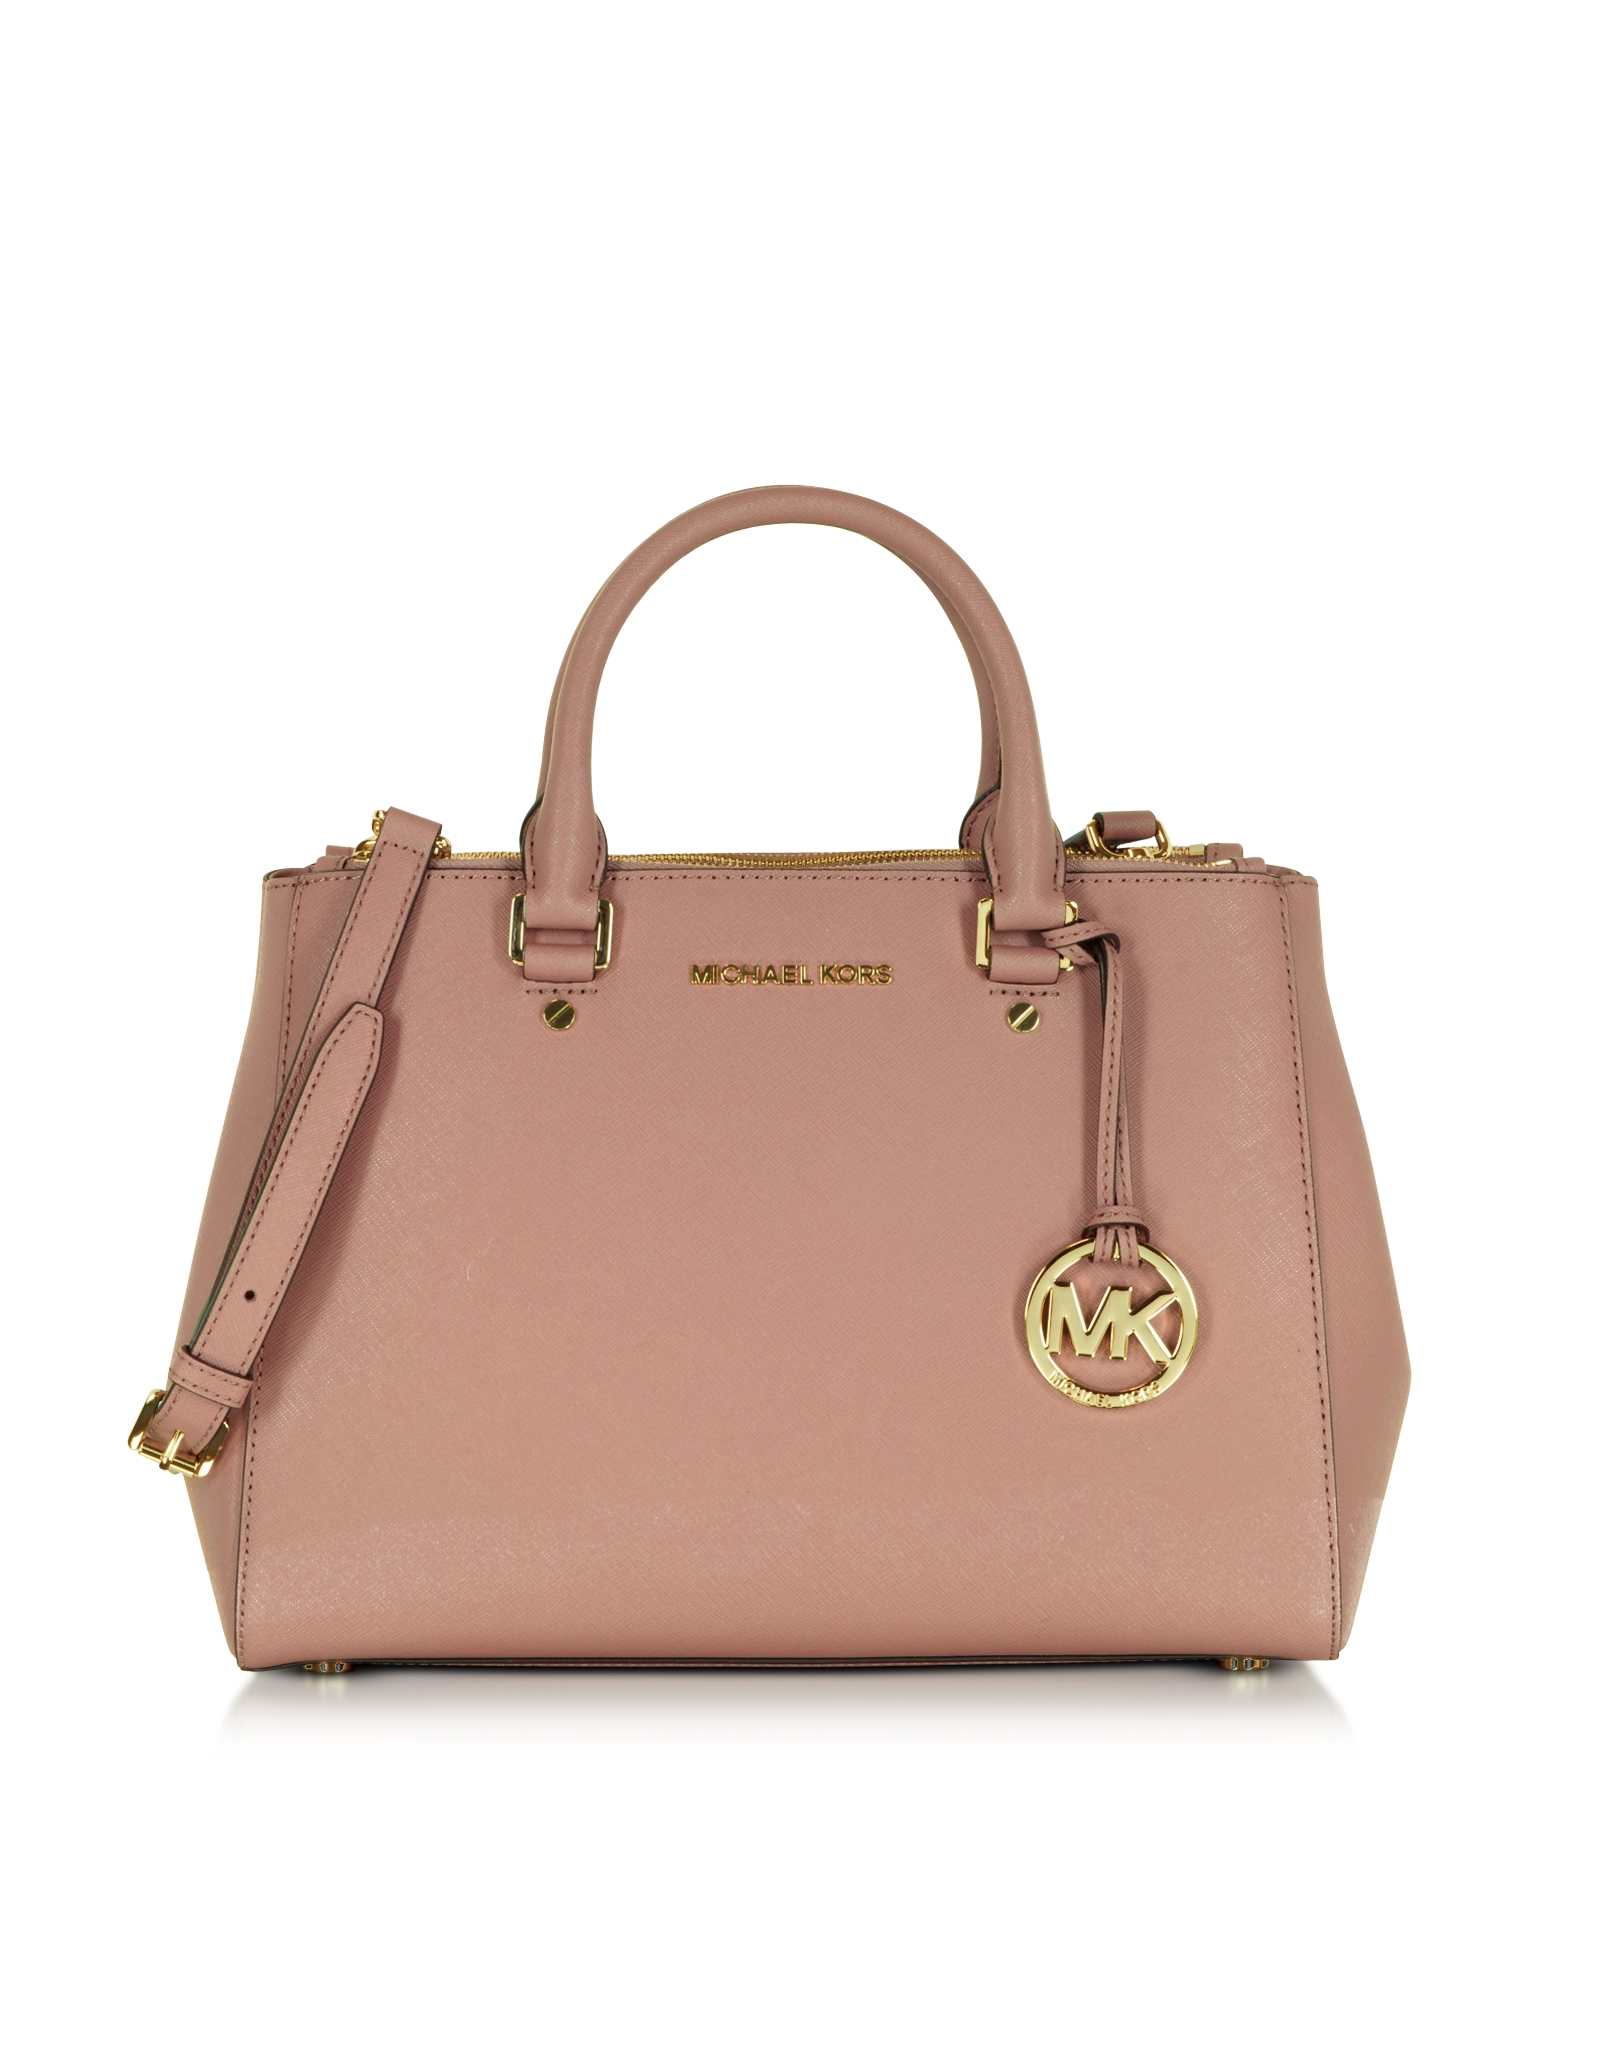 michael kors sutton medium saffiano leather satchel bag in pink lyst. Black Bedroom Furniture Sets. Home Design Ideas